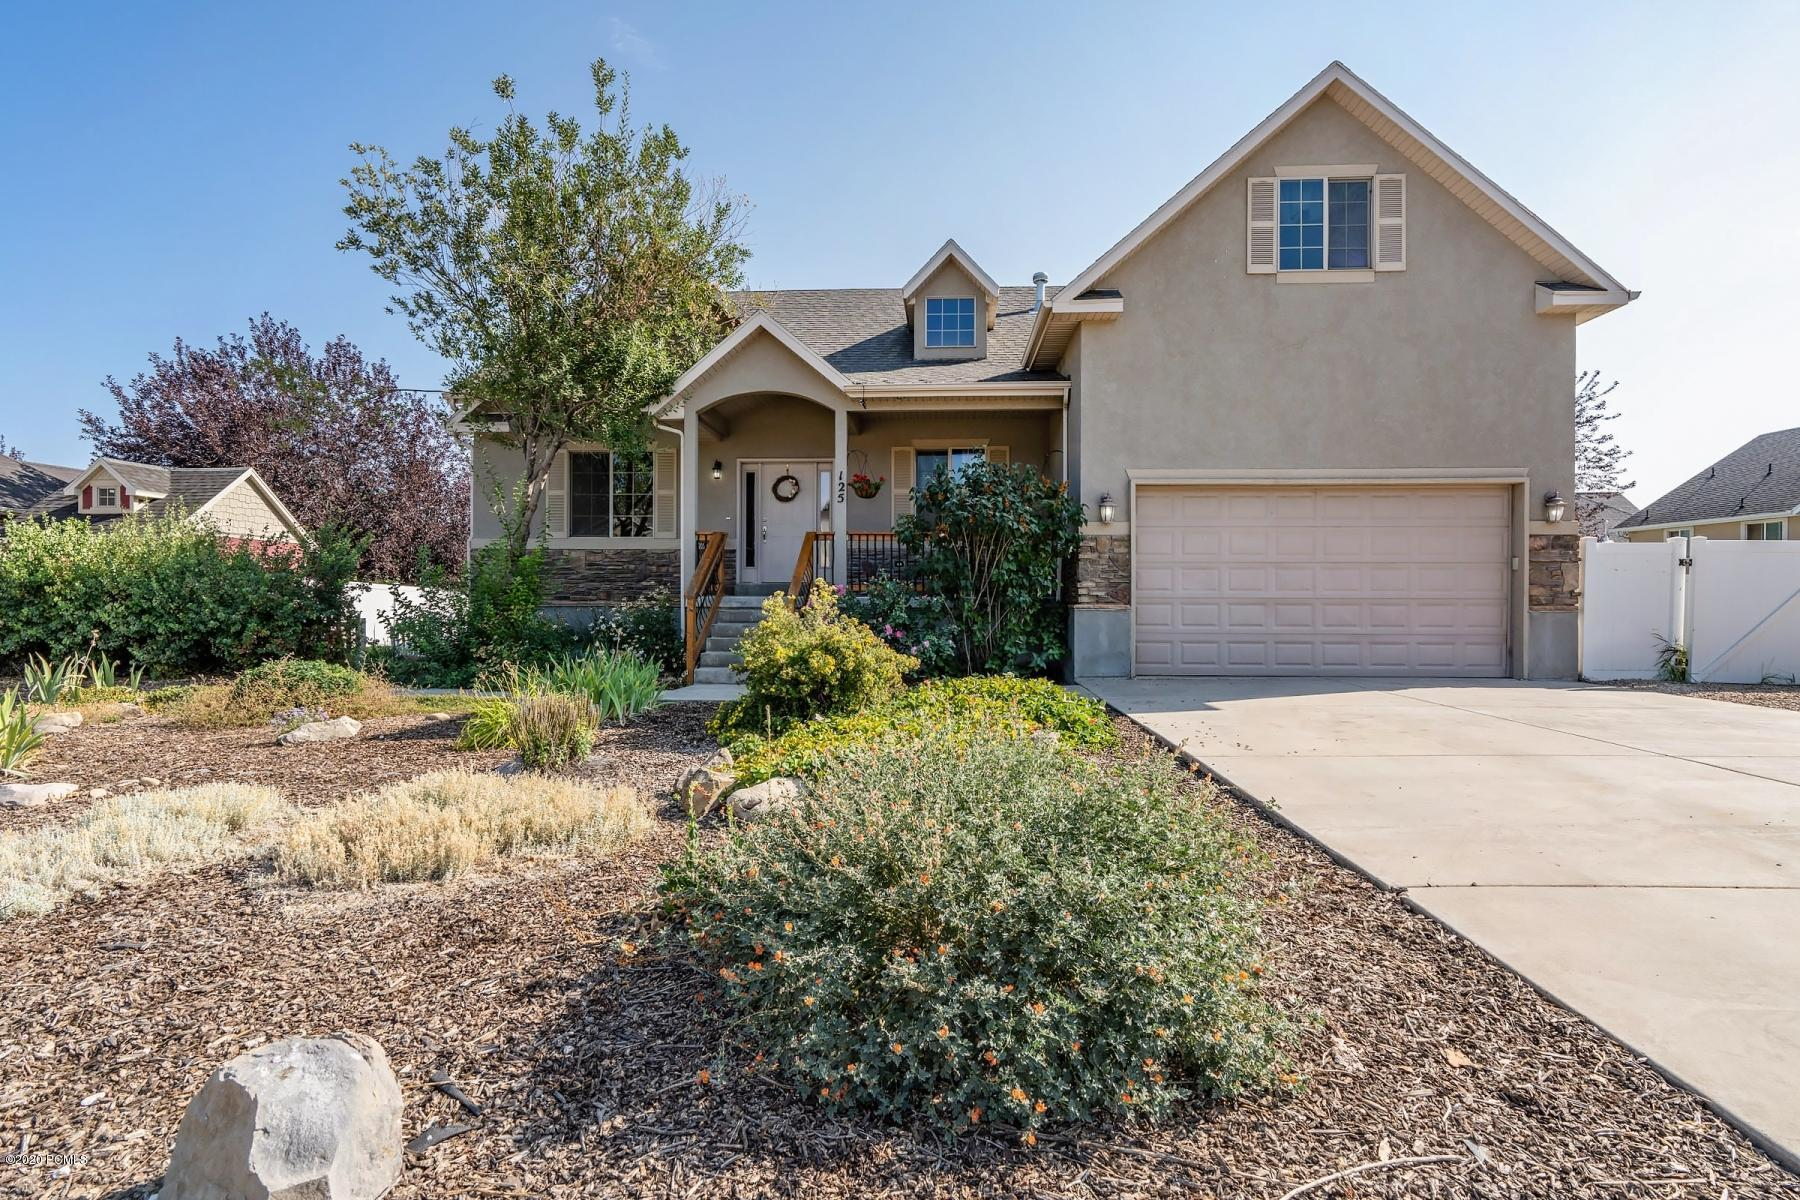 125 300 S, Midway, Utah 84049, 5 Bedrooms Bedrooms, ,4 BathroomsBathrooms,Single Family,For Sale,300 S,12003334